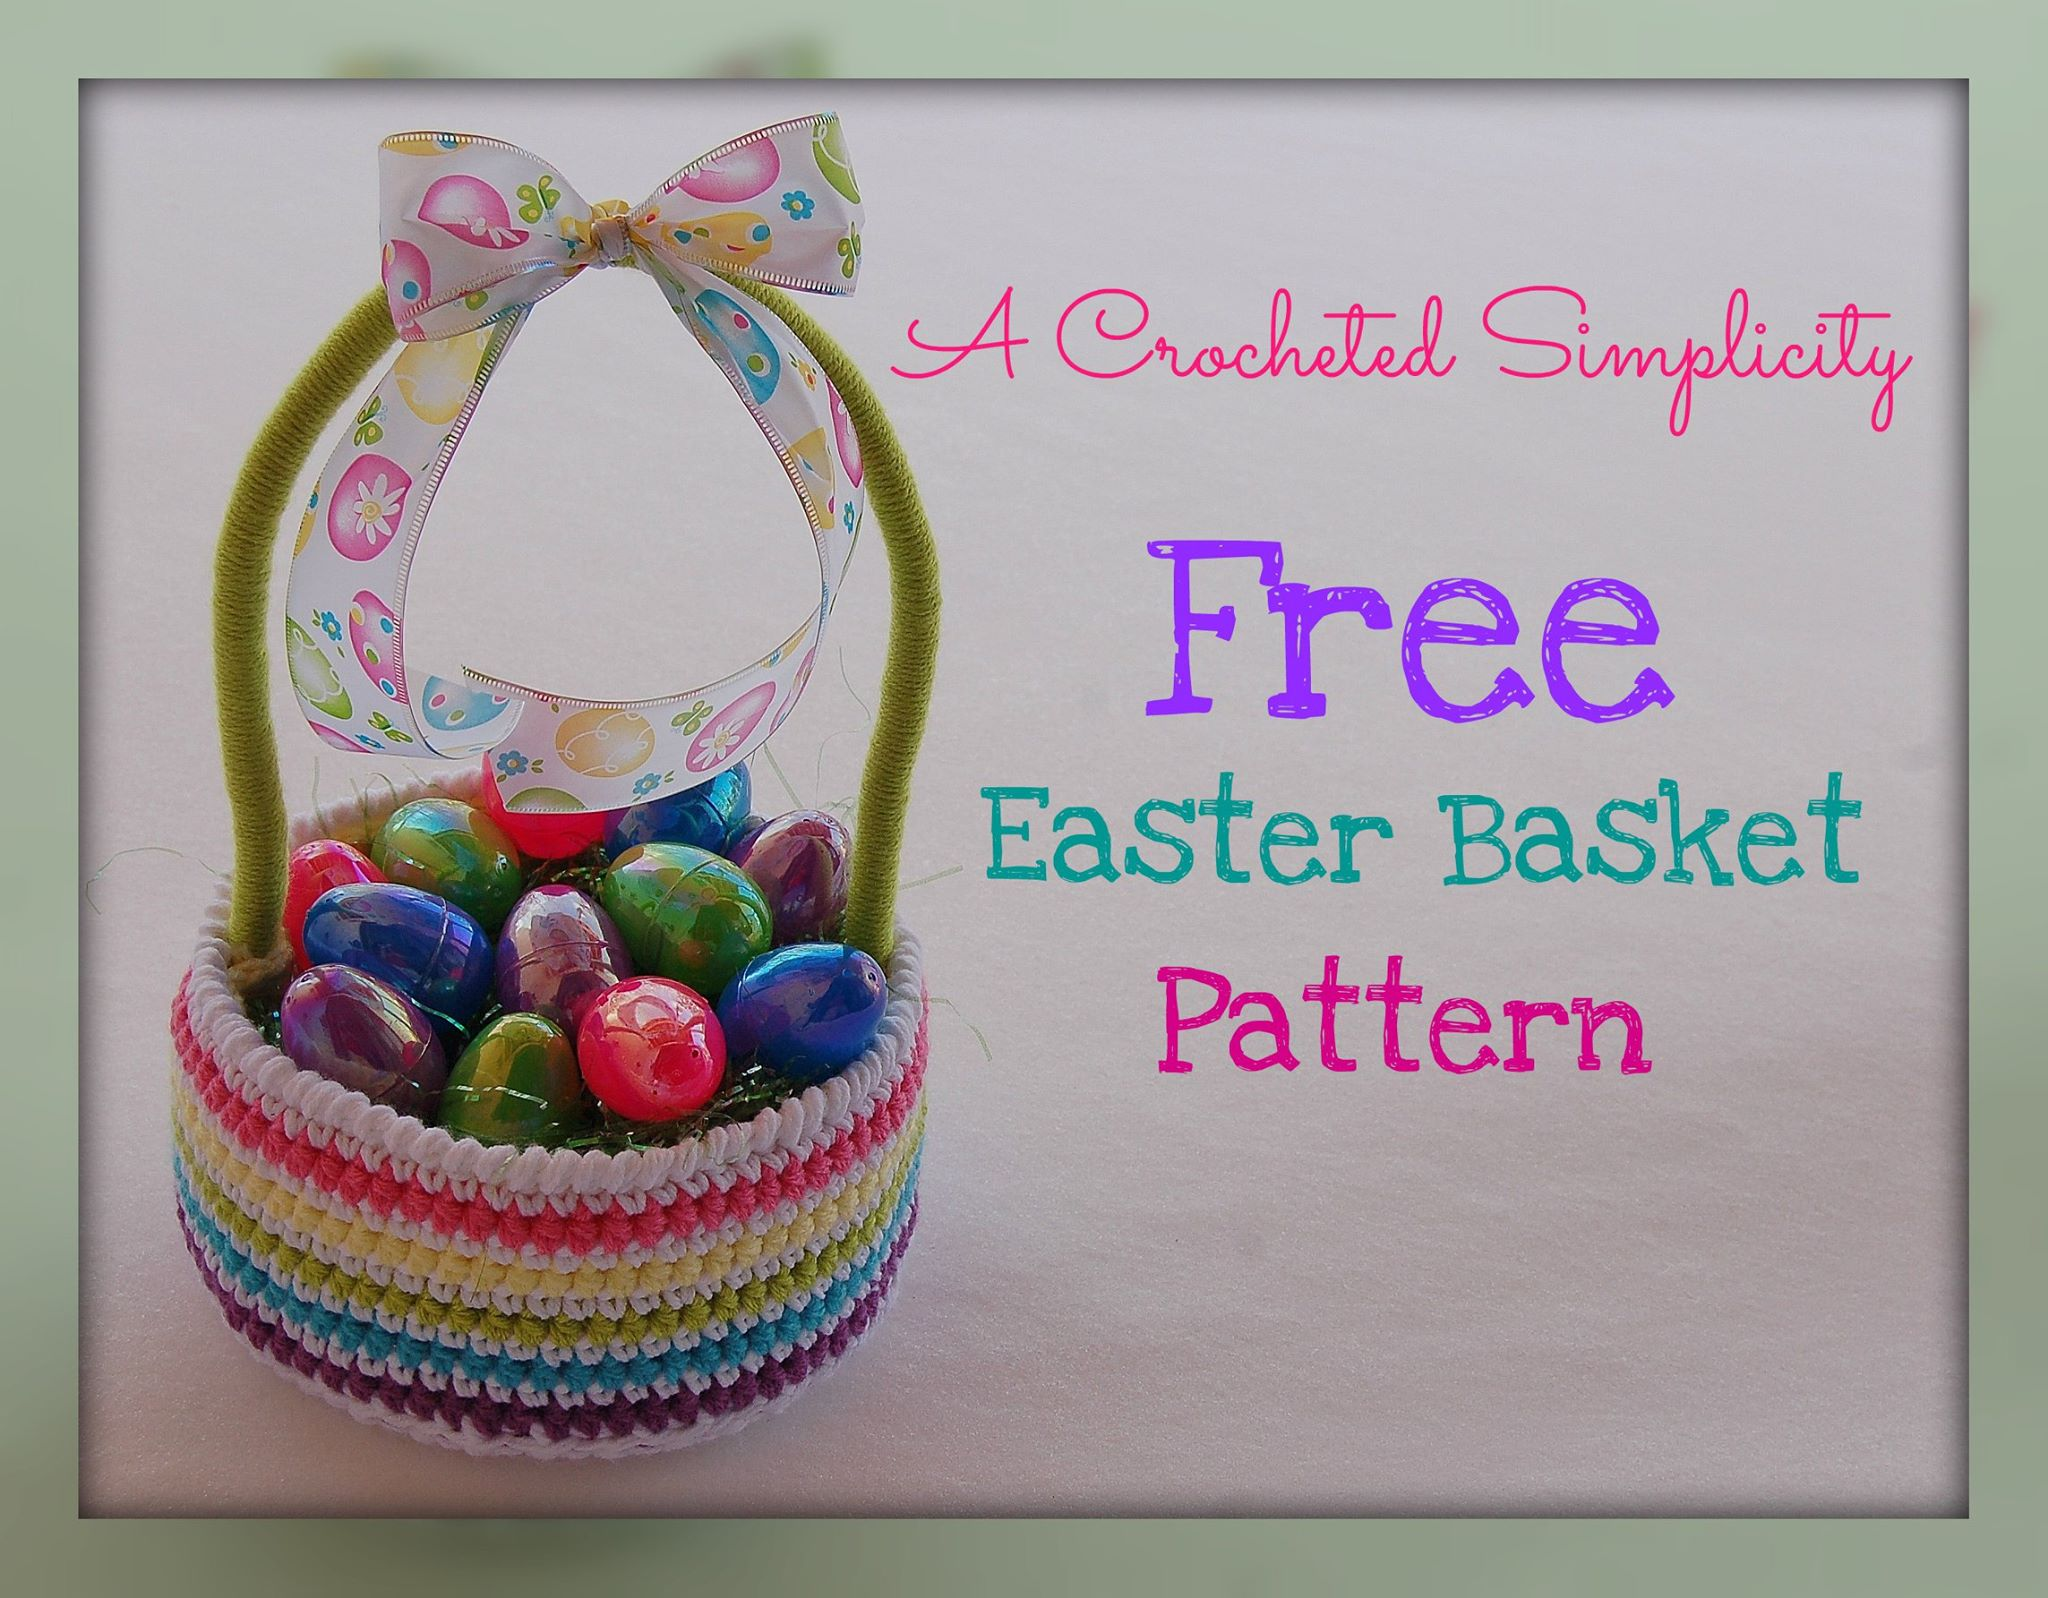 Free Crochet Pattern - Easy Easter Basket - A Crocheted ...